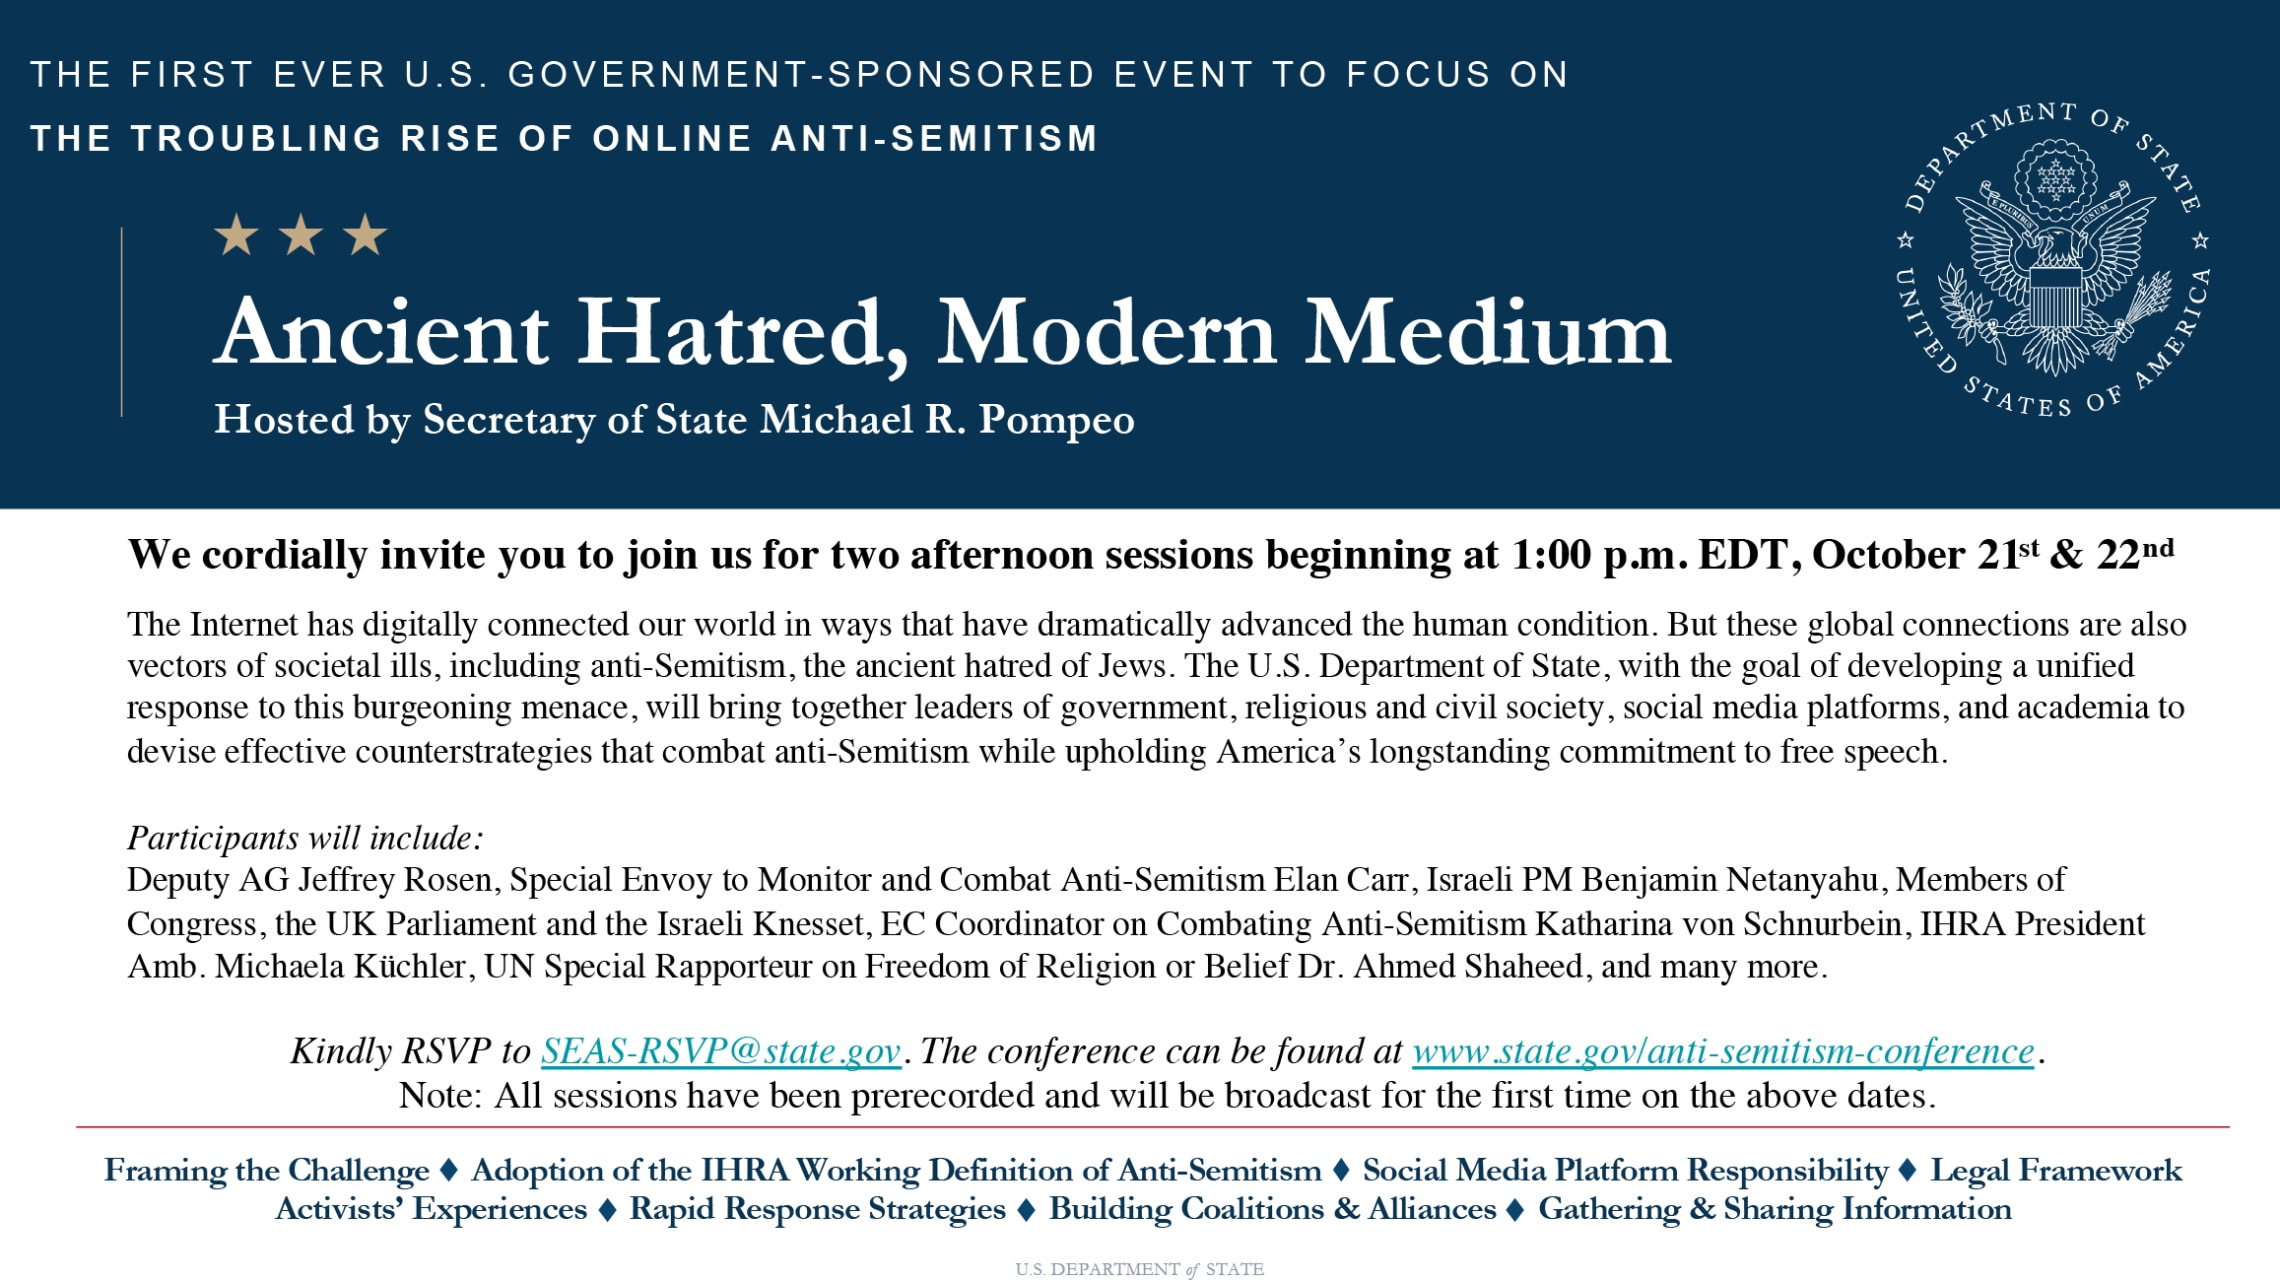 THE FIRST EVER U.S. GOVERNMENT-SPONSORED EVENT TO FOCUS ON THE TROUBLING RISE OF ONLINE ANTI-SEMITISM Ancient Hatred, Modern Medium Hosted by Secretary of State Michael R. Pompeo We cordially invite you to join us for two afternoon sessions beginning at 1:00 p.m. EDT, October 21st & 22nd The Internet has digitally connected our world in ways that have dramatically advanced the human condition. But these global connections are also vectors of societal ills, including anti-Semitism, the ancient hatred of Jews. The U.S. Department of State, with the goal of developing a unified response to this burgeoning menace, will bring together leaders of government, religious and civil society, social media platforms, and academia to devise effective counterstrategies that combat anti-Semitism while upholding America's longstanding commitment to free speech. Participants will include: Deputy AG Jeffrey Rosen, Special Envoy to Monitor and Combat Anti-Semitism Elan Carr, Israeli PM Benjamin Netanyahu, Members of Congress, the UK Parliament and the Israeli Knesset, EC Coordinator on Combating Anti-Semitism Katharina von Schnurbein, IHRA President Amb. Michaela Küchler, UN Special Rapporteur on Freedom of Religion or Belief Dr. Ahmed Shaheed, and many more. Kindly RSVP to SEAS-RSVP@state.gov. The conference can be found at www.state.gov/anti-semitism-conference. Note: All sessions have been prerecorded and will be broadcast for the first time on the above dates. Framing the Challenge Adoption of the IHRA Working Definition of Anti-Semitism Social Media Platform Responsibility Legal Framework Activists' Experiences Rapid Response Strategies Building Coalitions & Alliances Gathering & Sharing Information